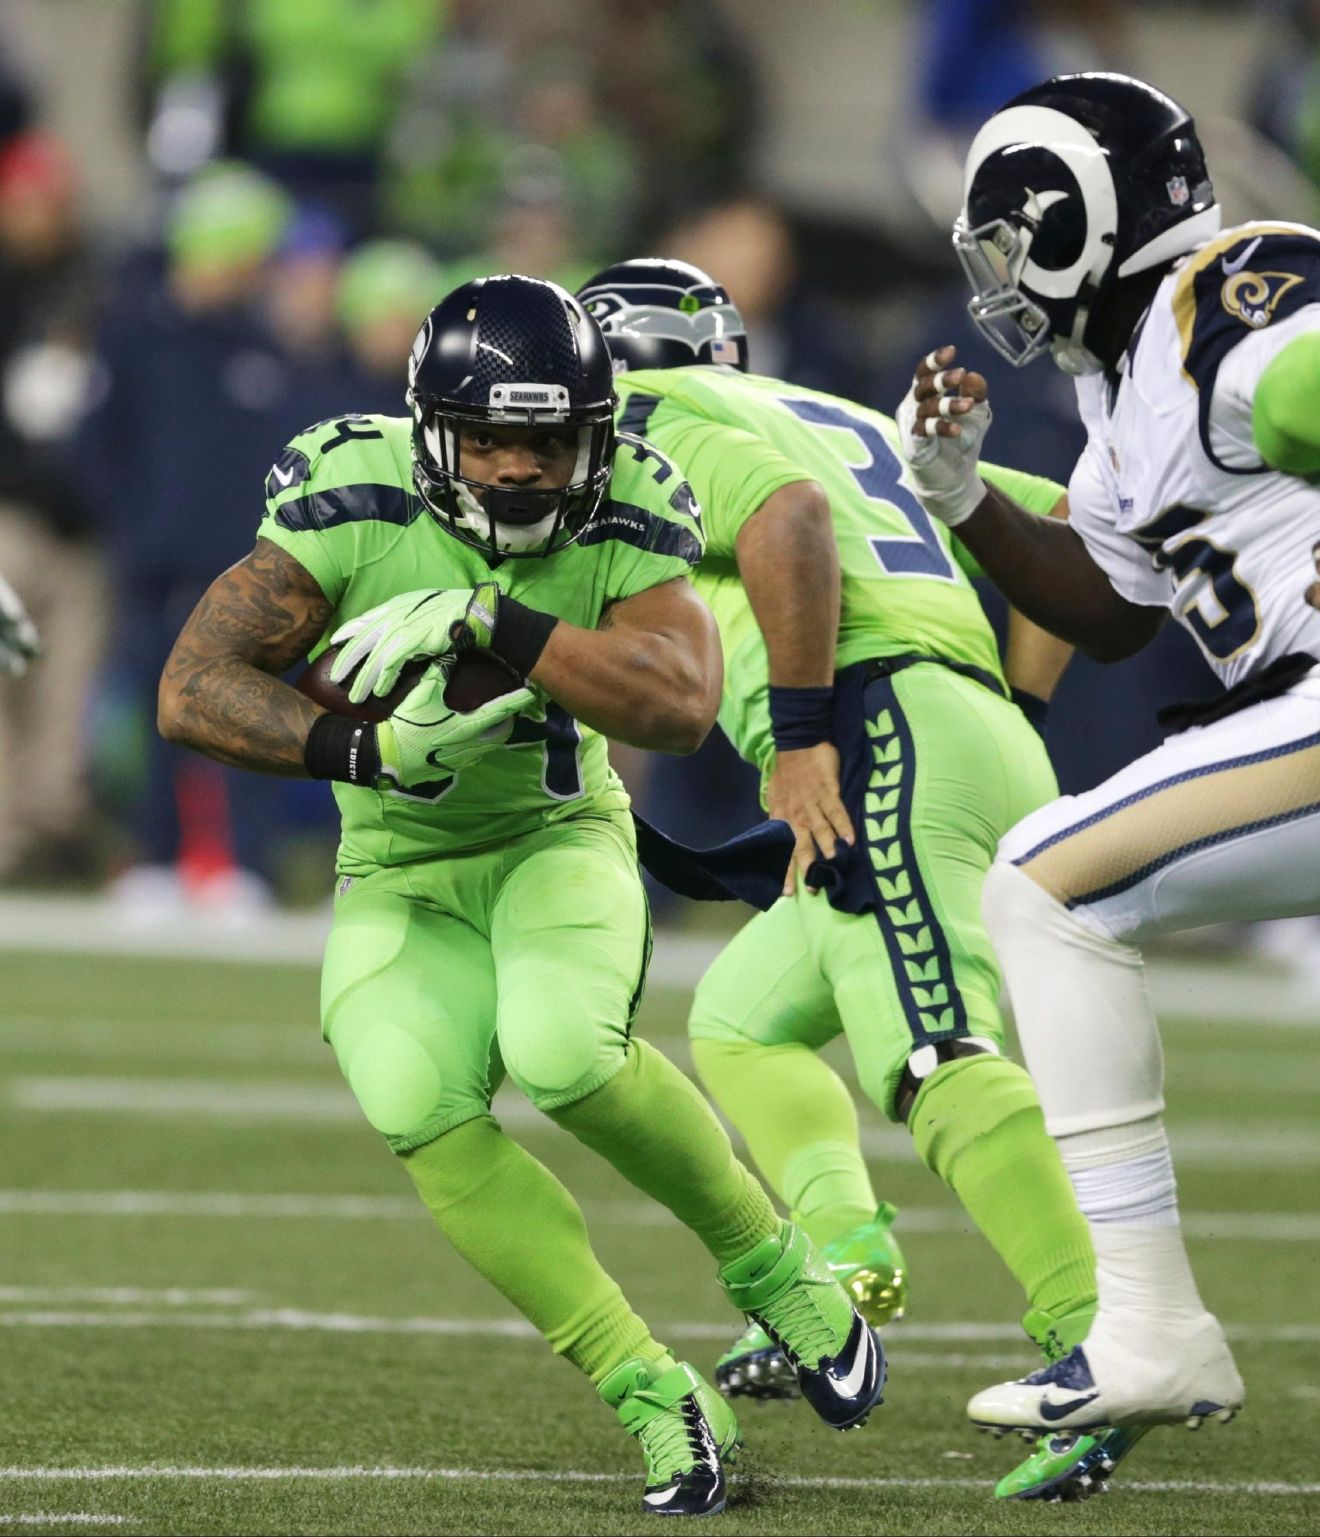 Seattle Seahawks running back Thomas Rawls rushes against the Los Angeles Rams in the first half of an NFL football game, Thursday, Dec. 15, 2016, in Seattle. (AP Photo/Scott Eklund)